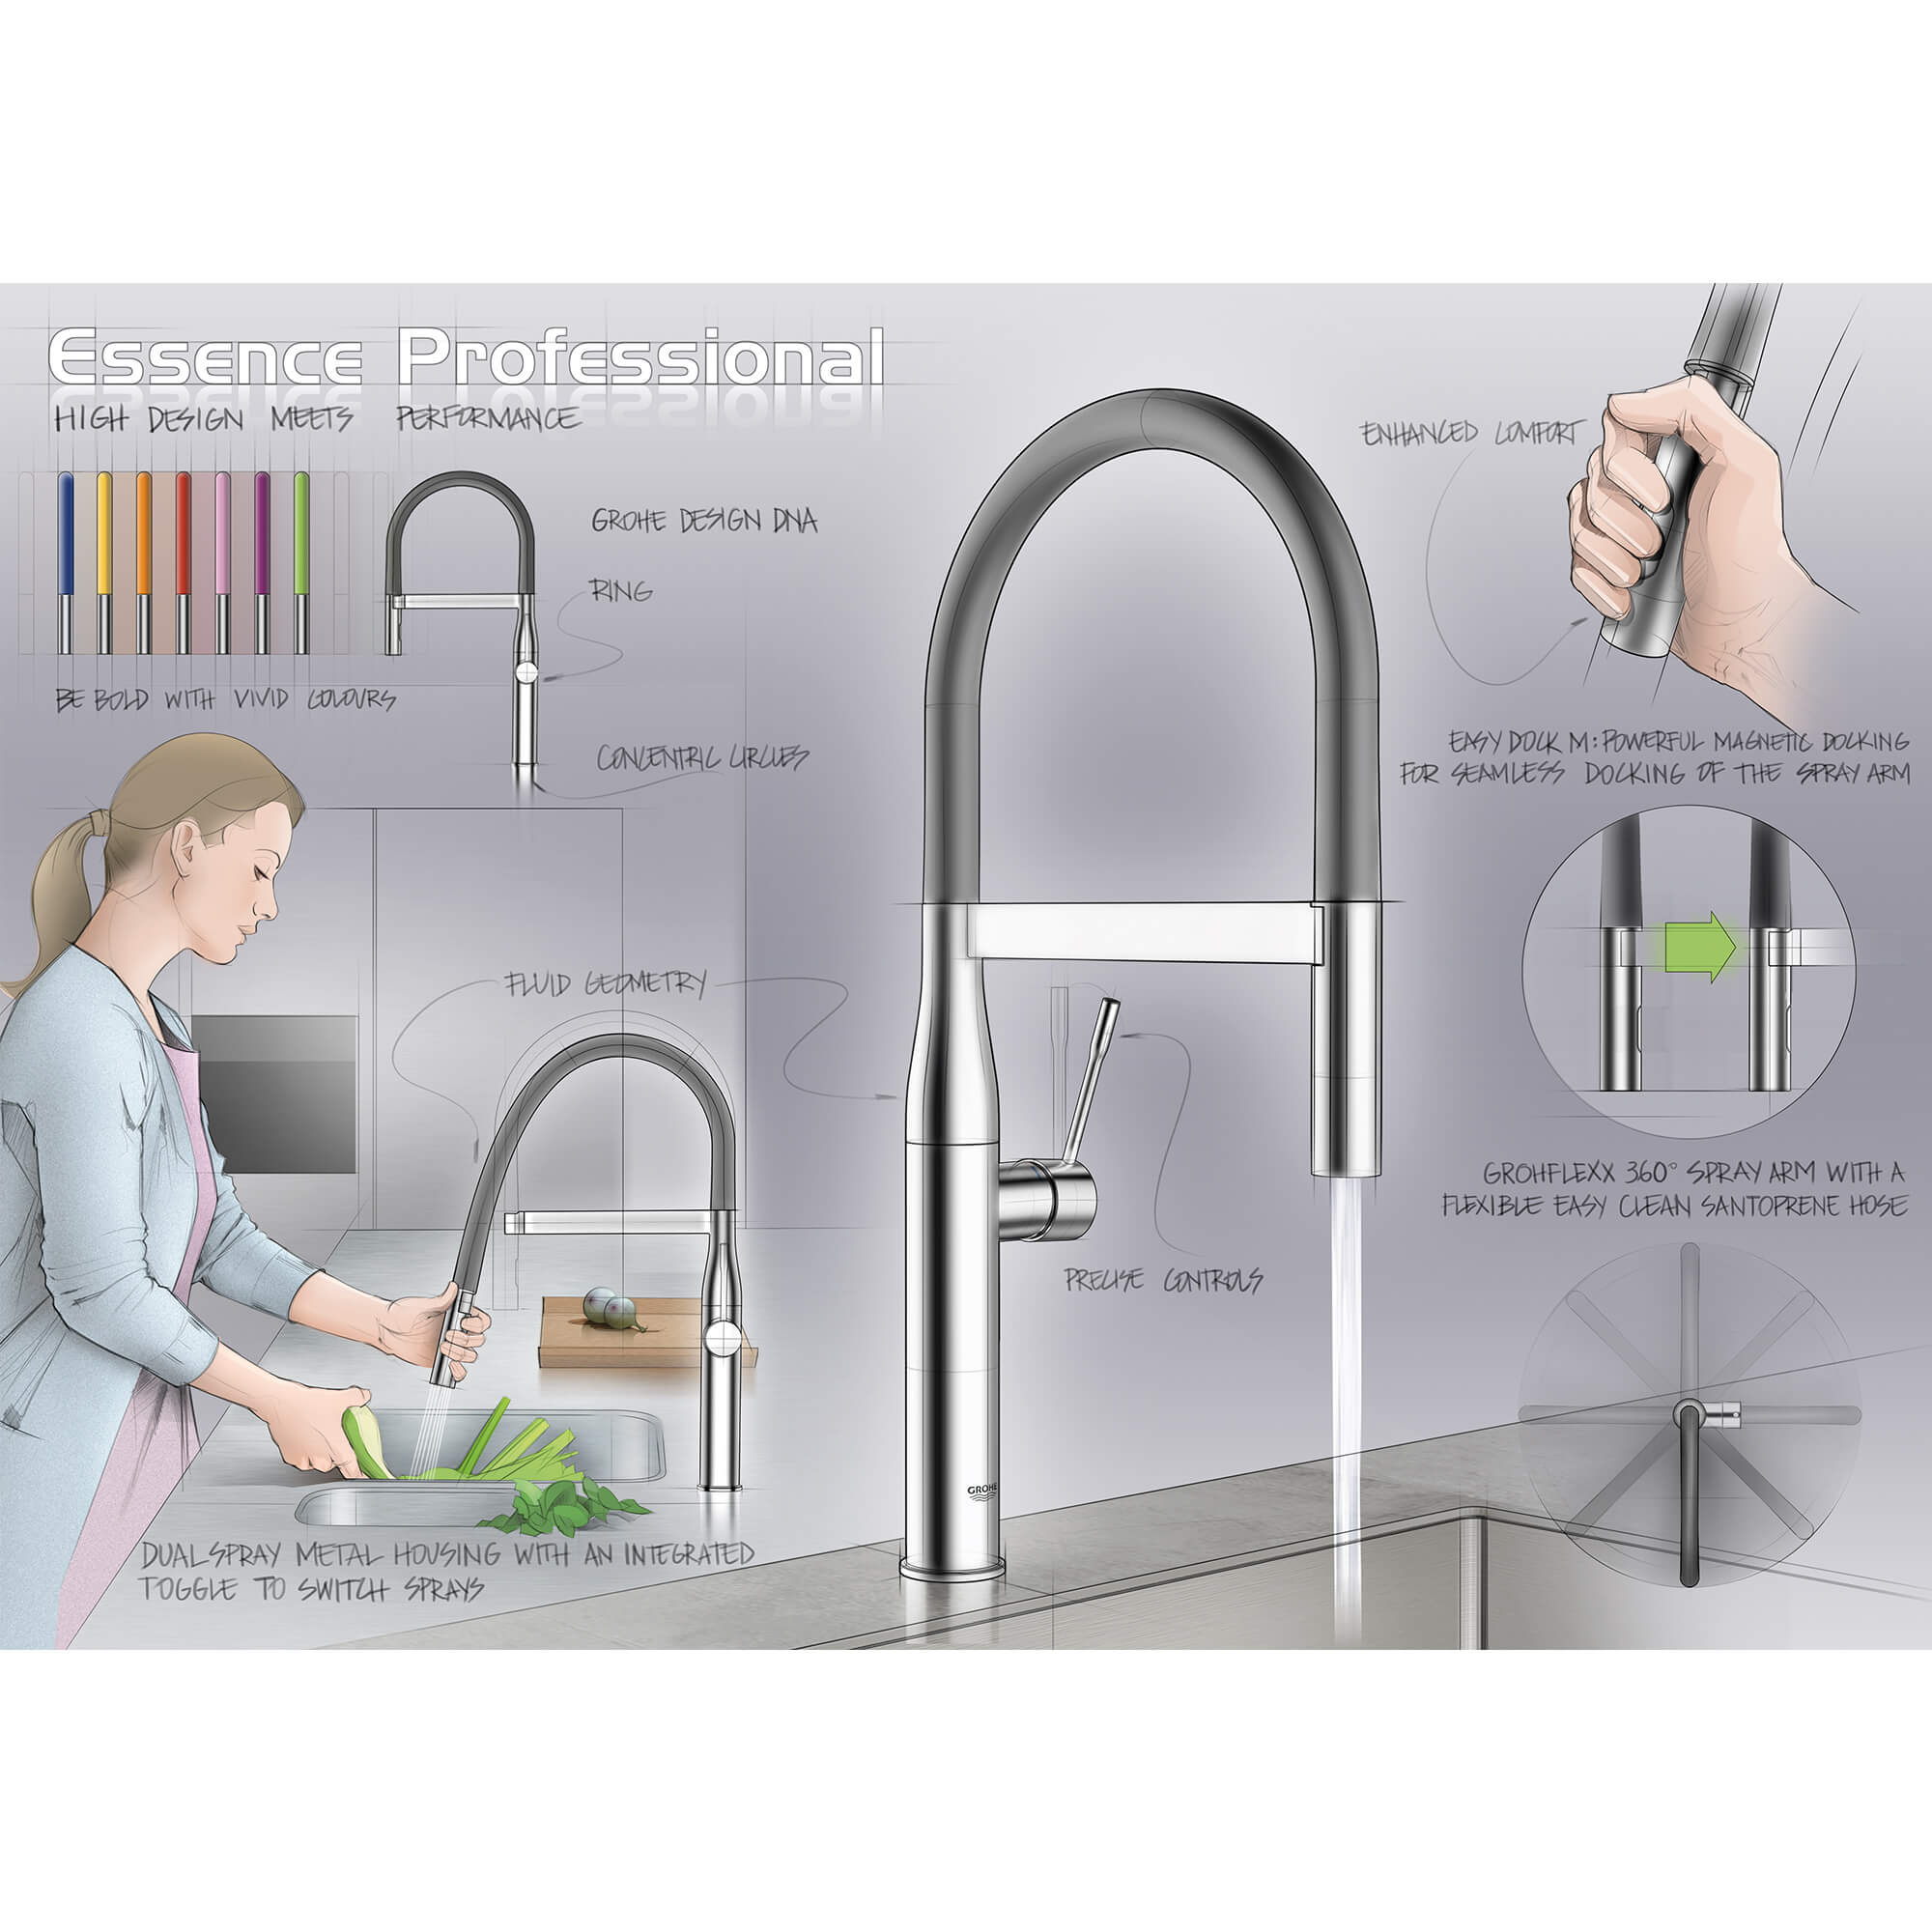 CONCEPTION essence GROHE